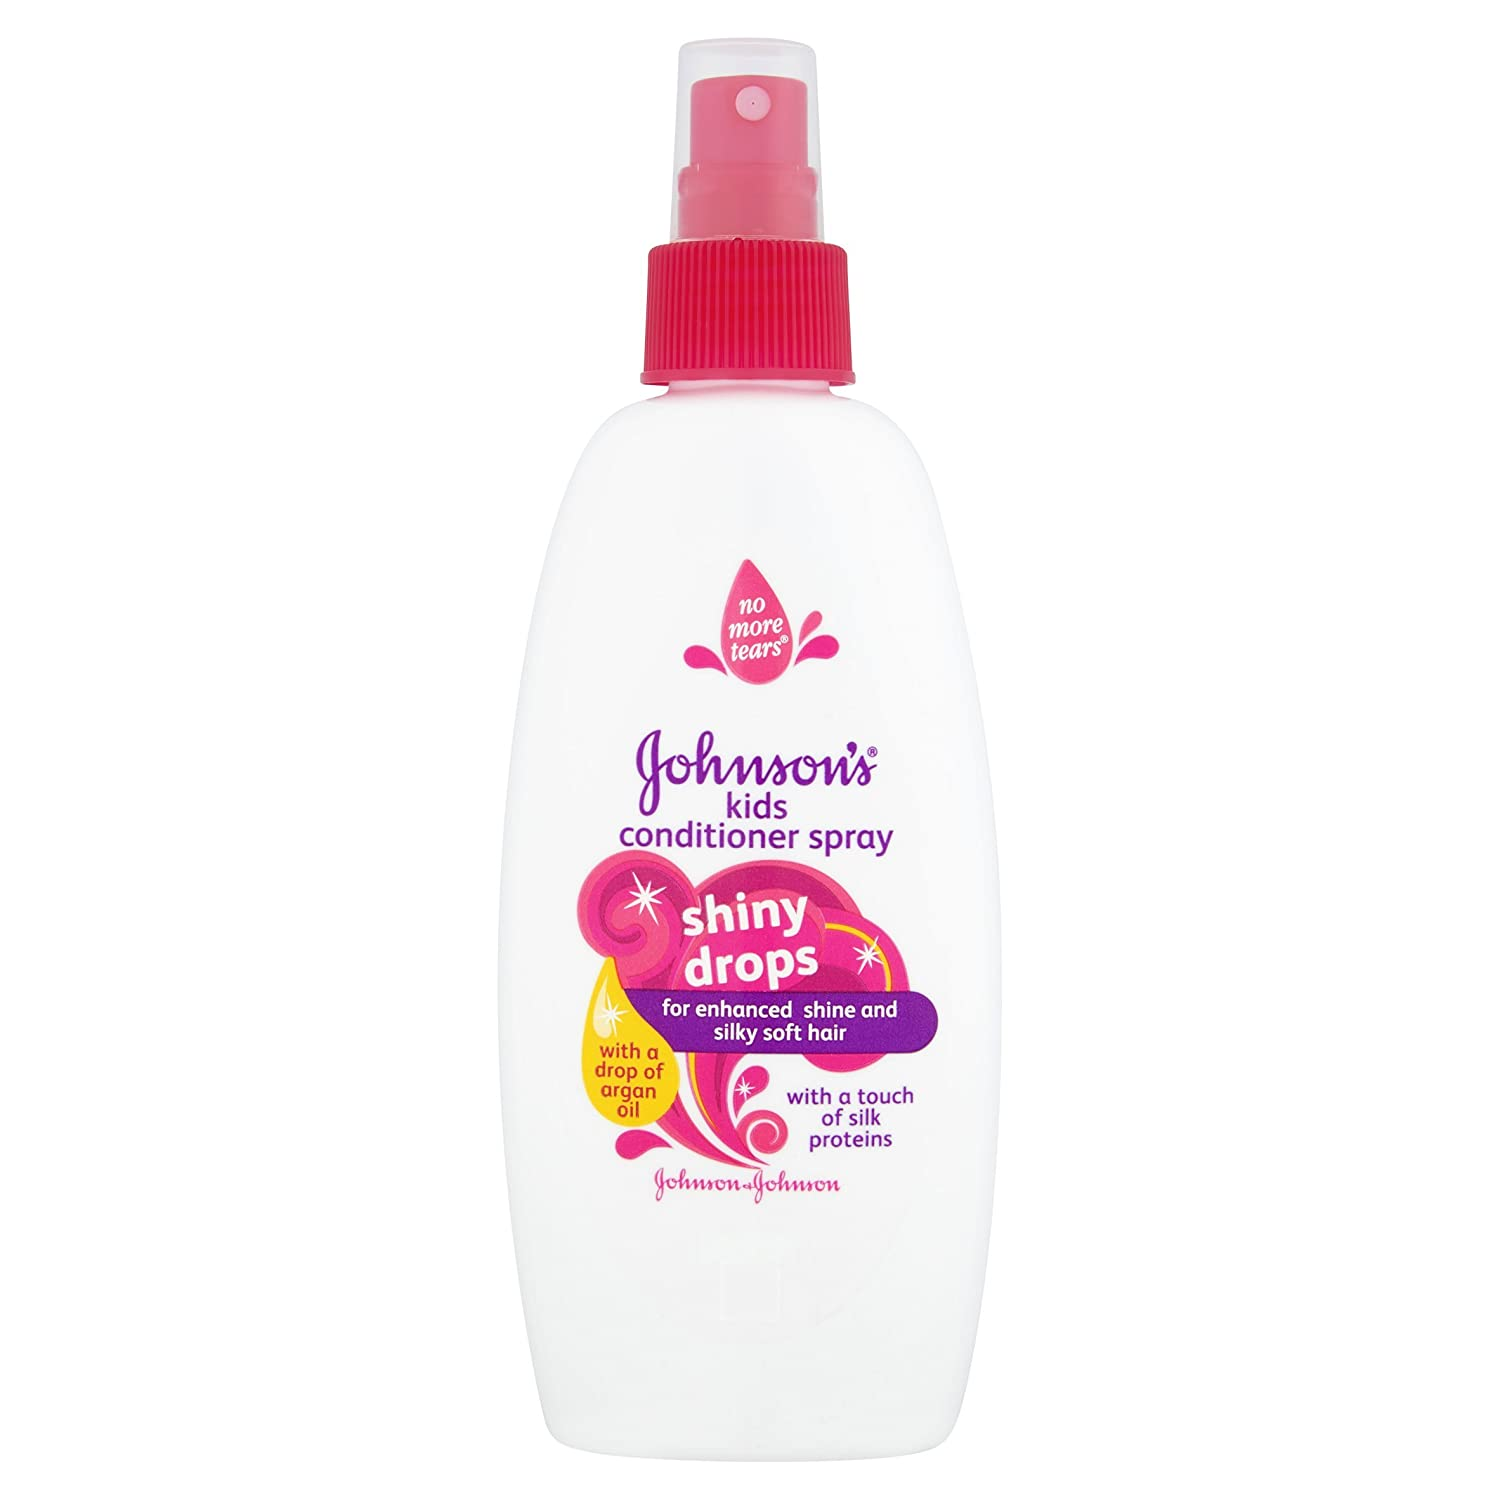 Johnson's Baby Kids Shiny Drops Conditioning Spray J&J 89400